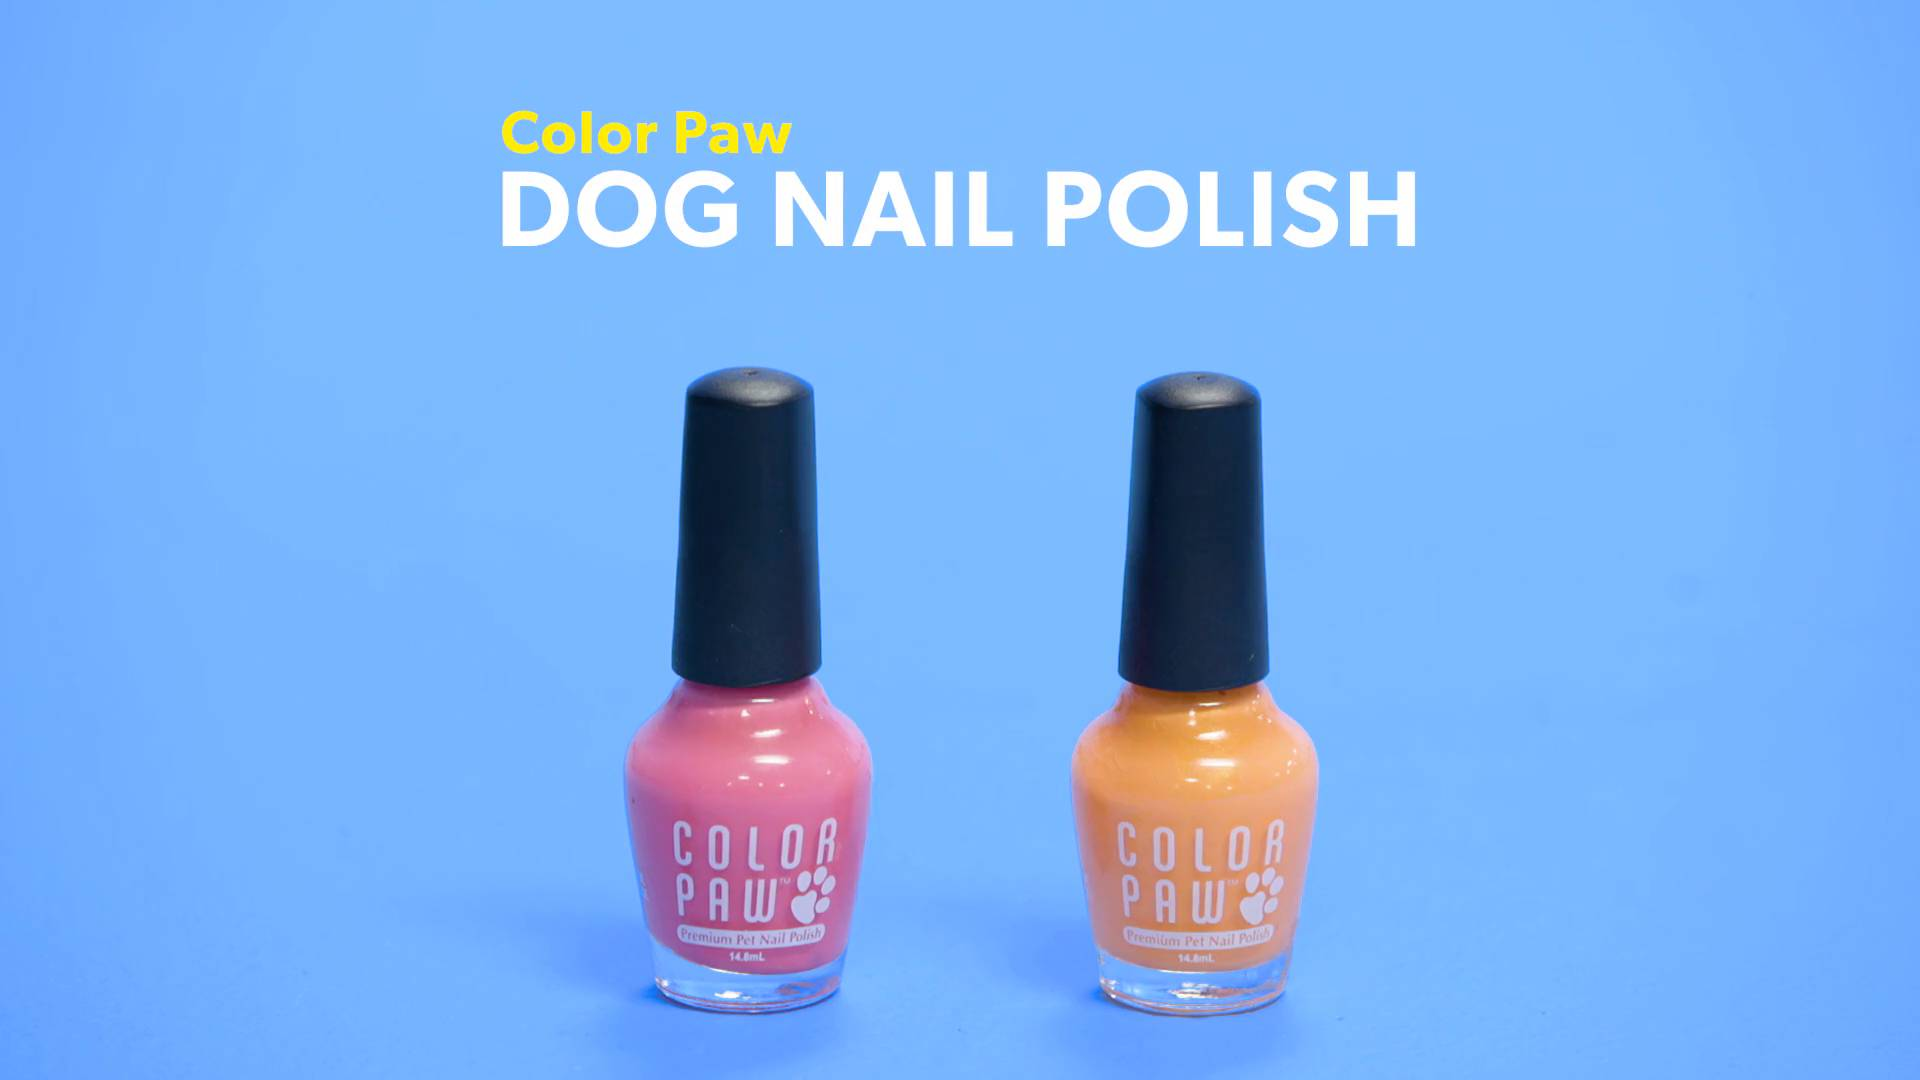 Color Paw Dog Nail Polish, Baby Pink - Chewy.com